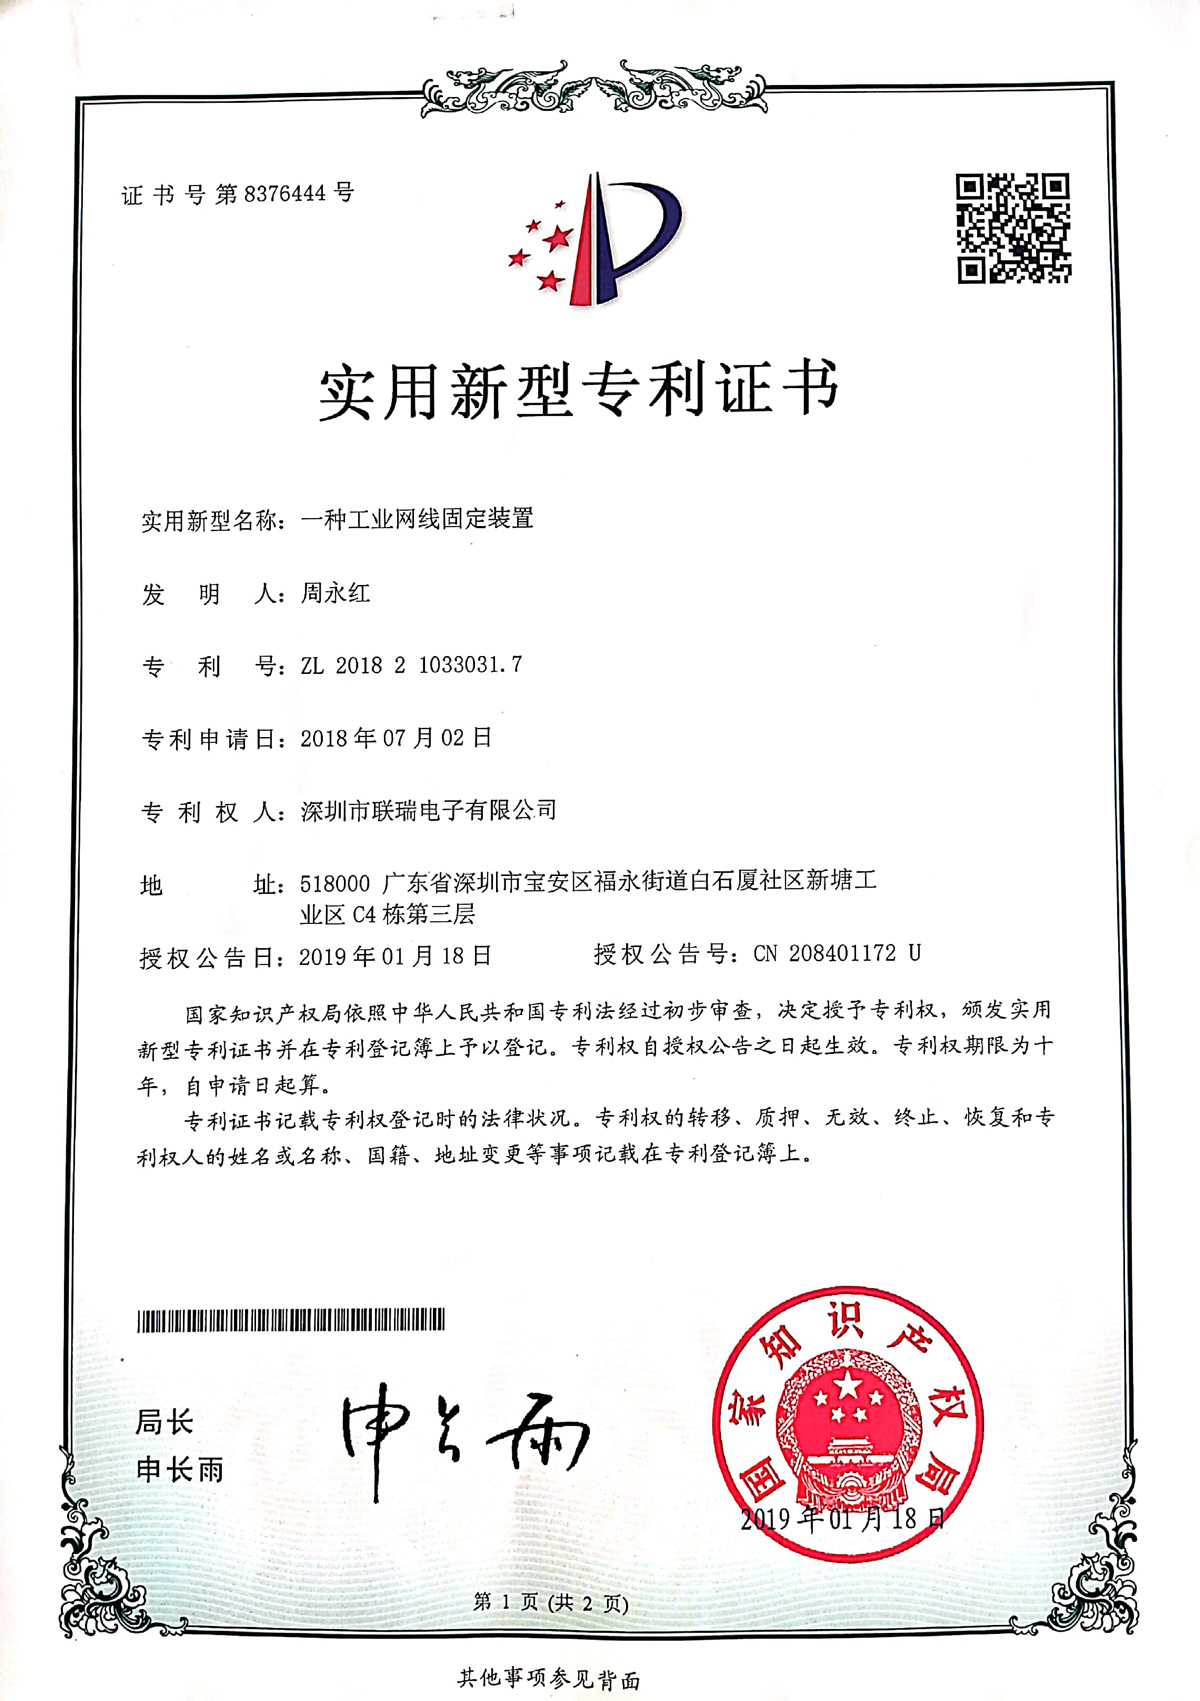 Utility model patent certificate - an industrial network cable fixing device